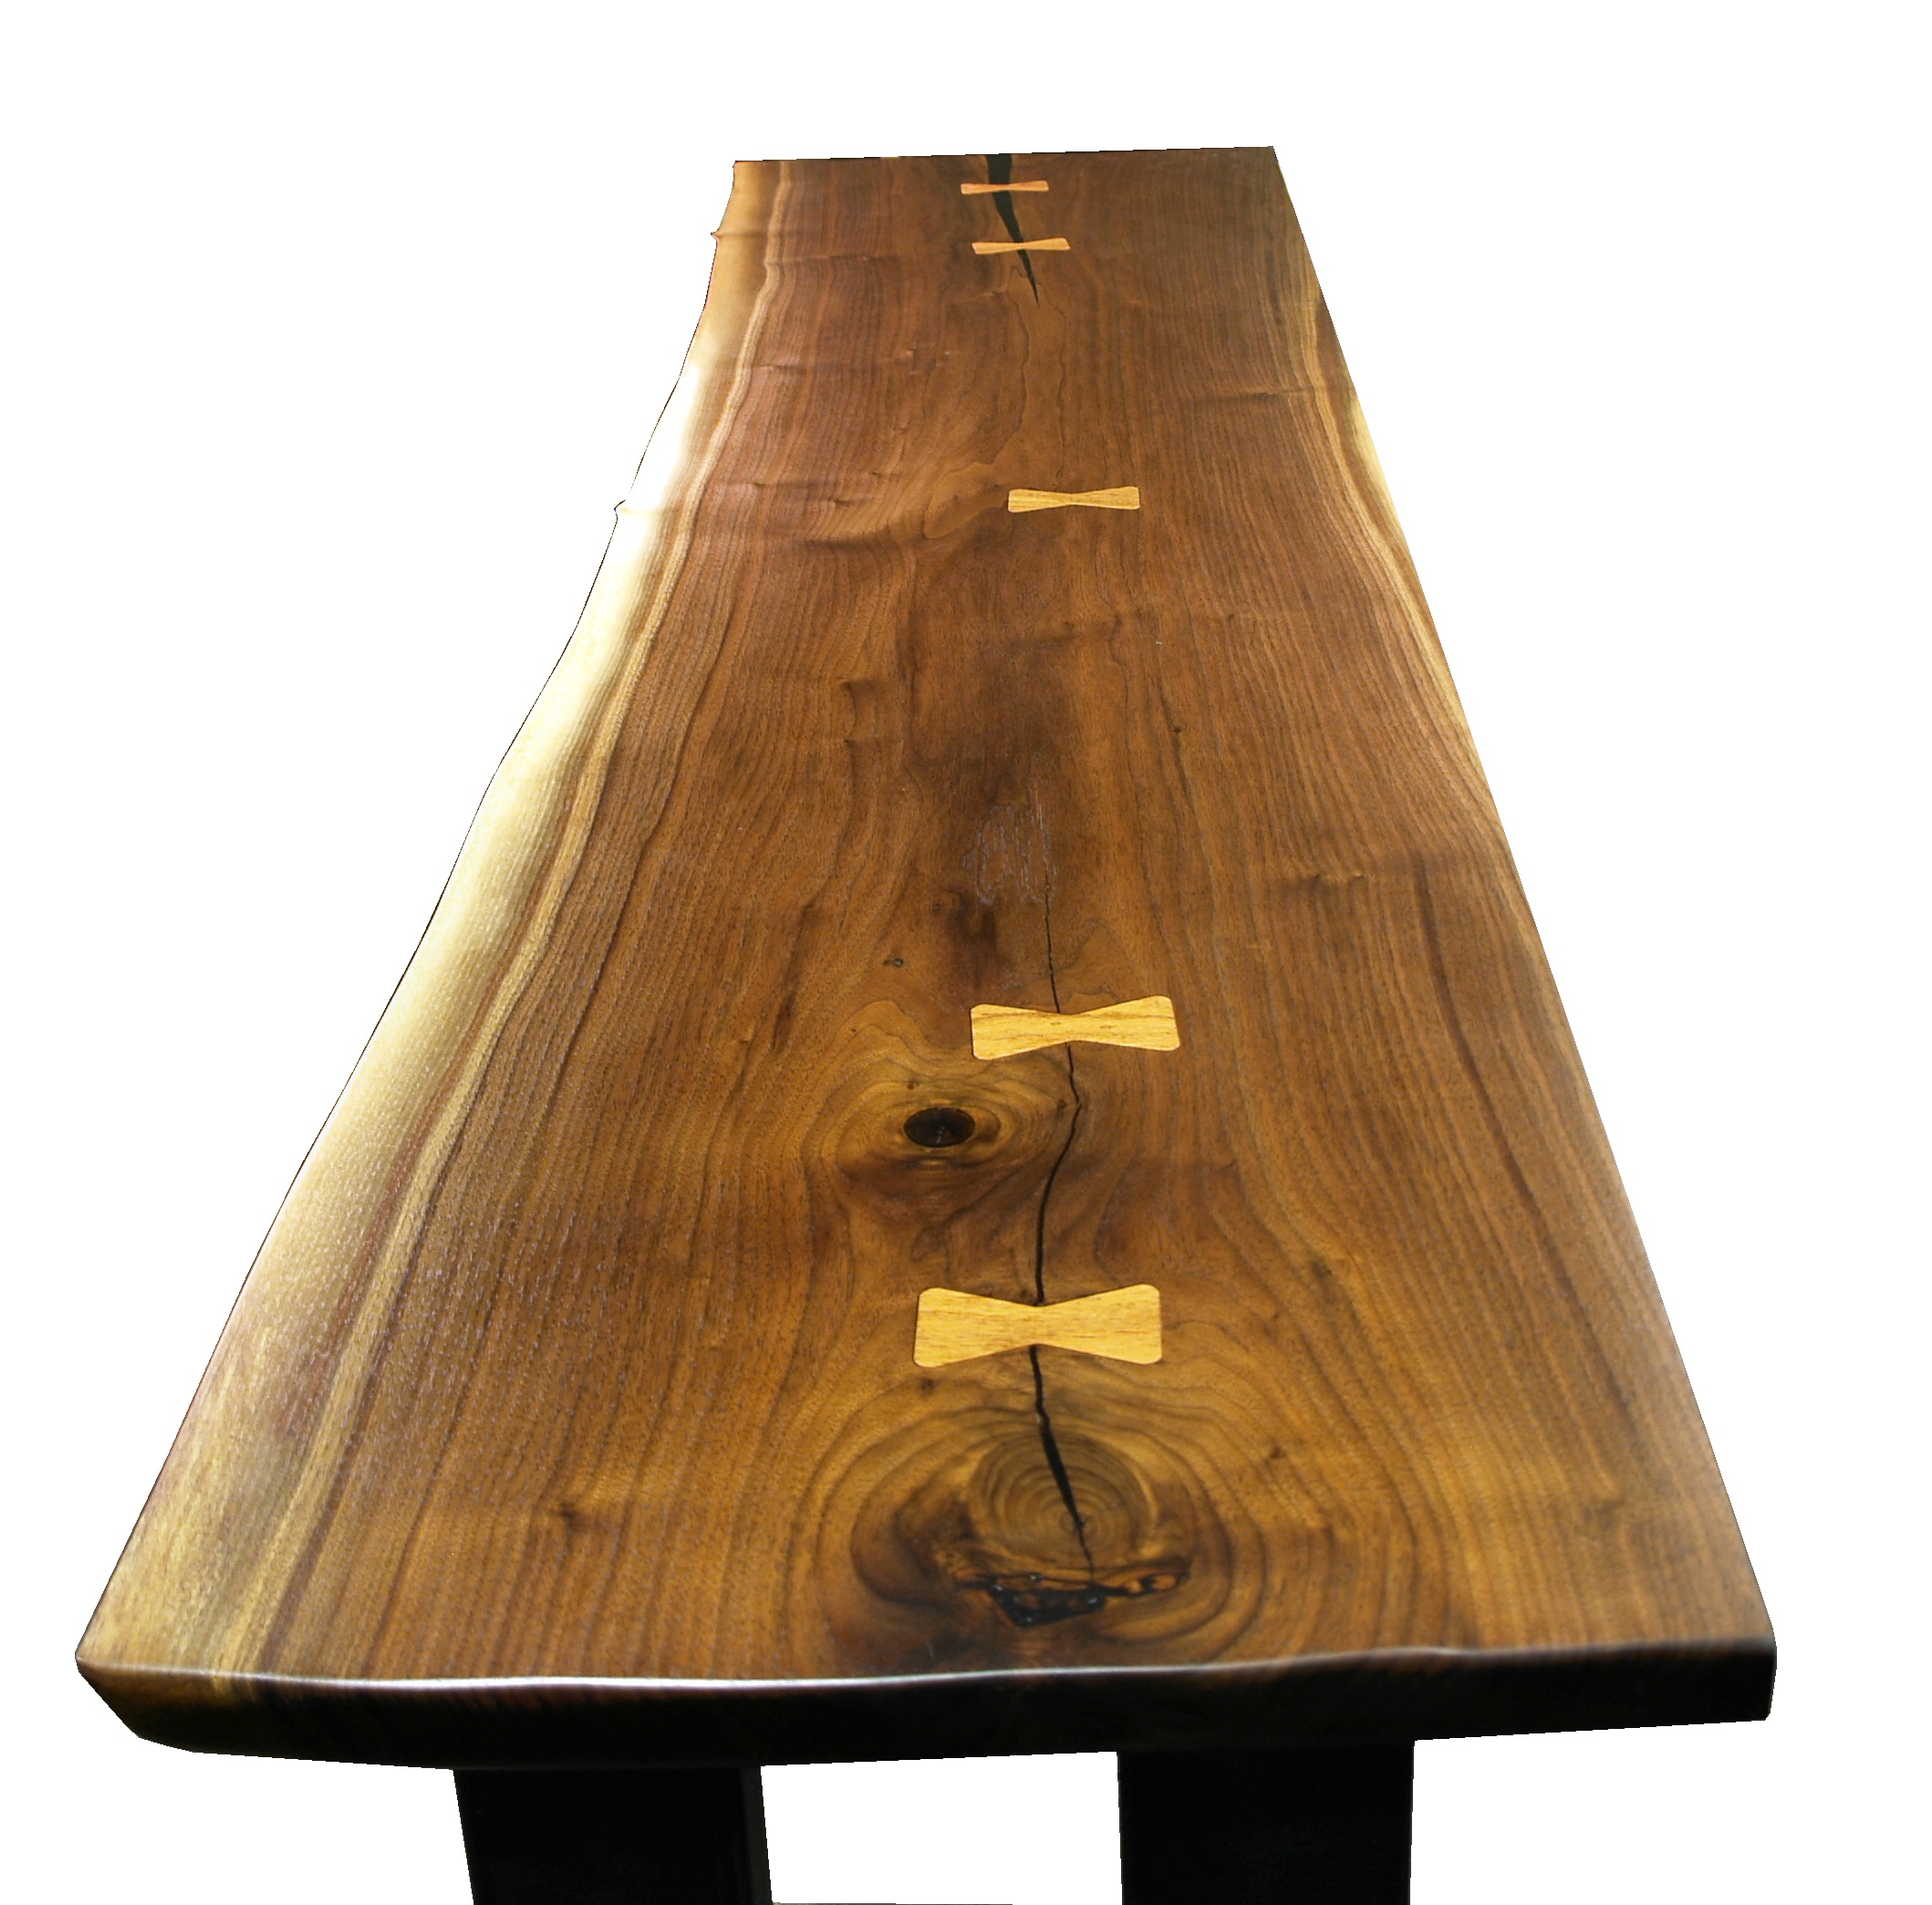 Charmant Custom Walnut Slab Table Top With Maple Butterfly Inlays. Natural Edges And  Waterlox Satin Finish